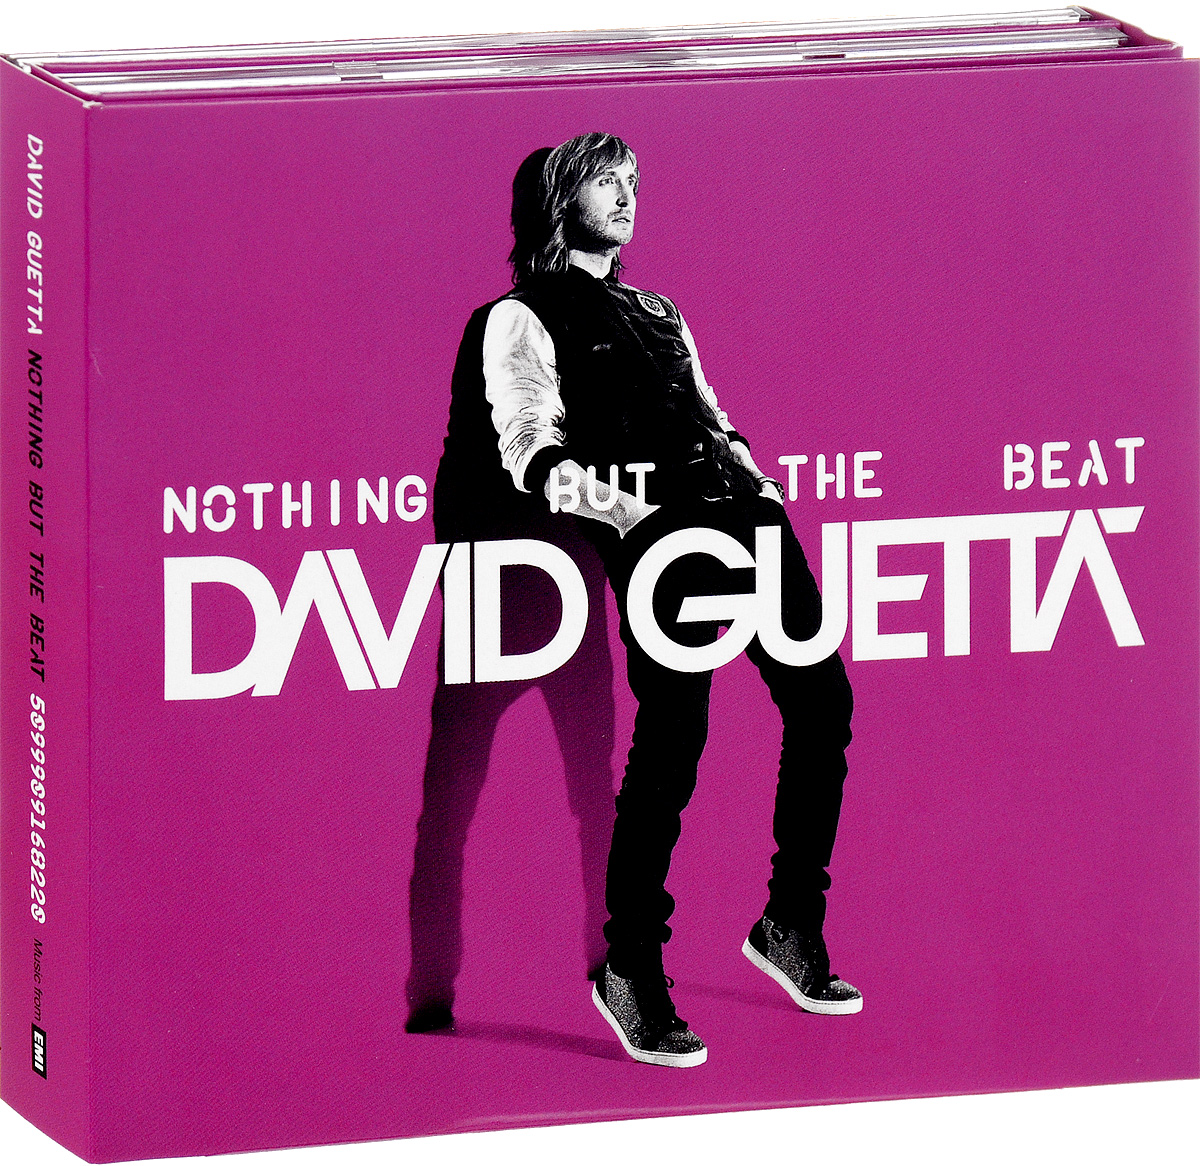 Дэвид Гетта,Ники Минаж,Flo Rida,Тайо Круз,Sia,Jessie J,Avicii,Afrojack,will.i.am,Akon,Timbaland David Guetta. Nothing But The Beat (3 CD) дэвид гетта david guetta original album series 5 cd